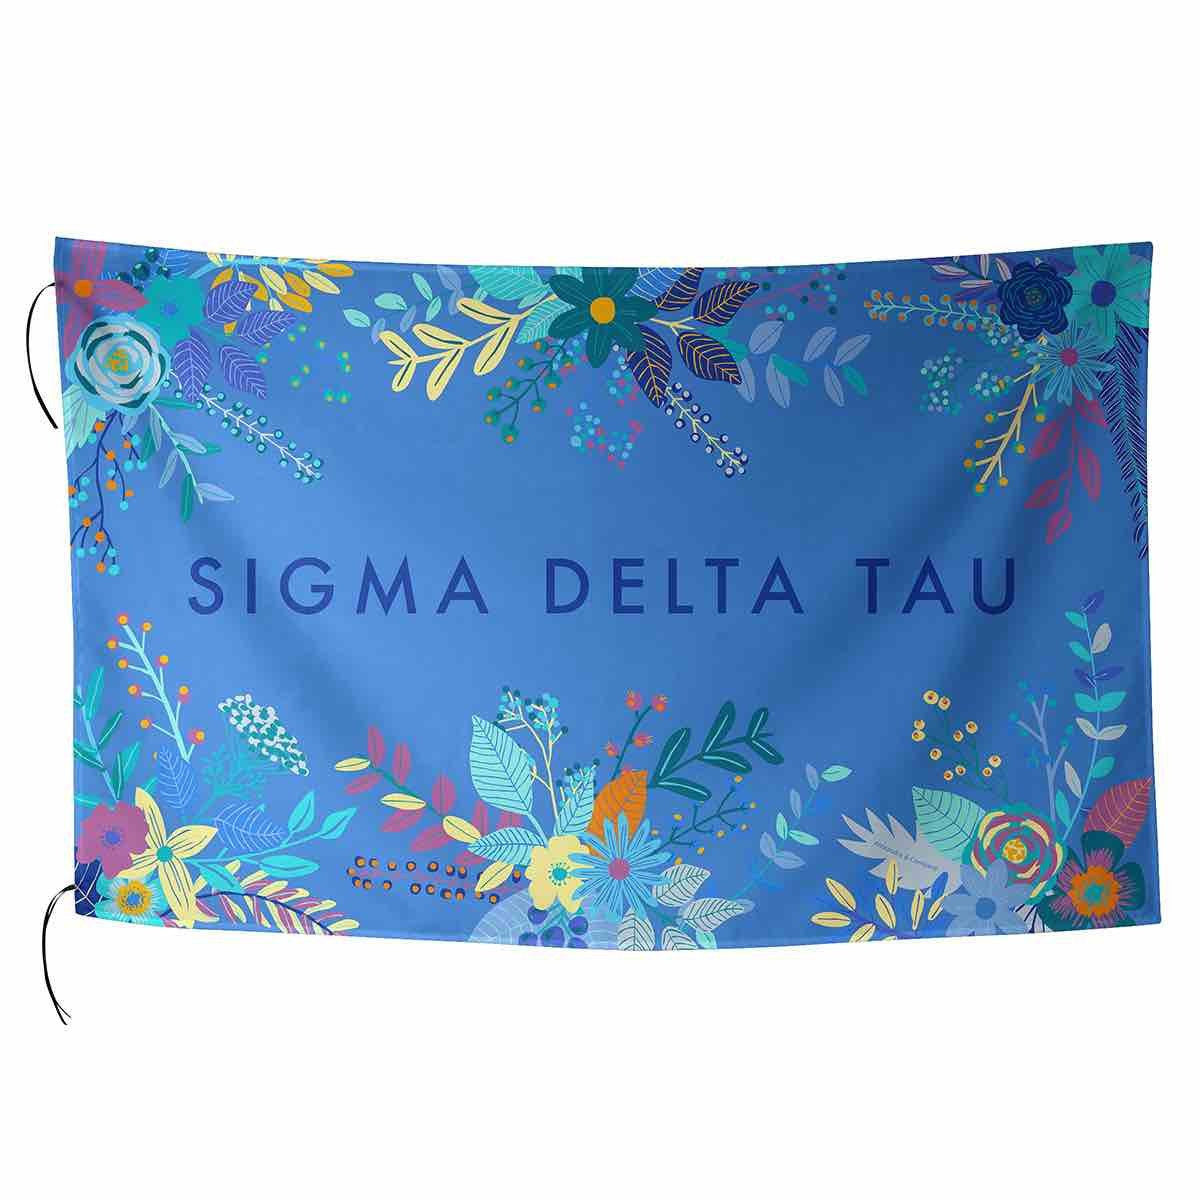 Sigma Delta Tau Flag in pretty pink with tropical palm leaves and sorority name in cursive.